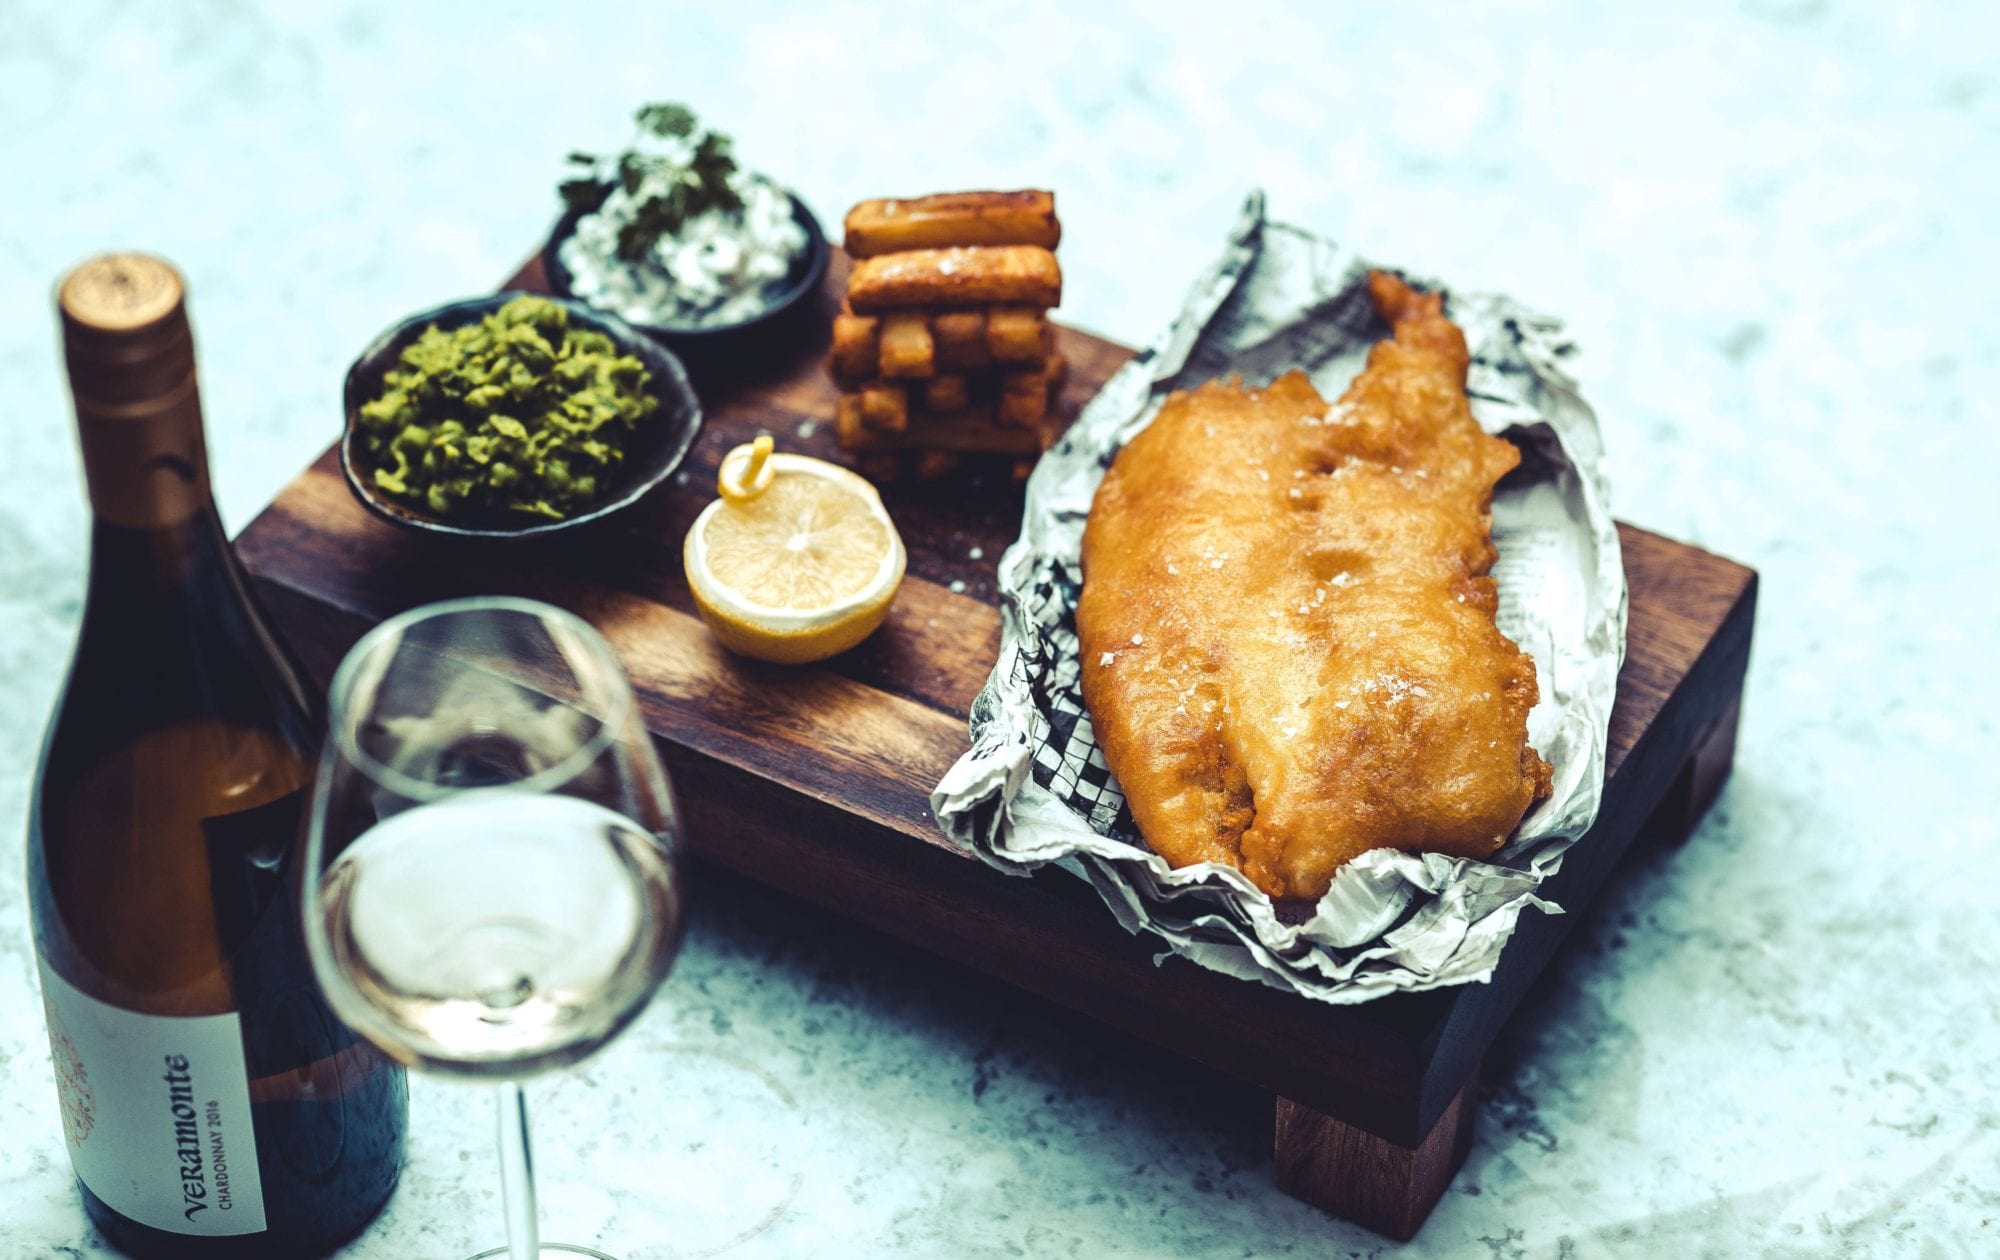 The Cookery School Fish & Chips